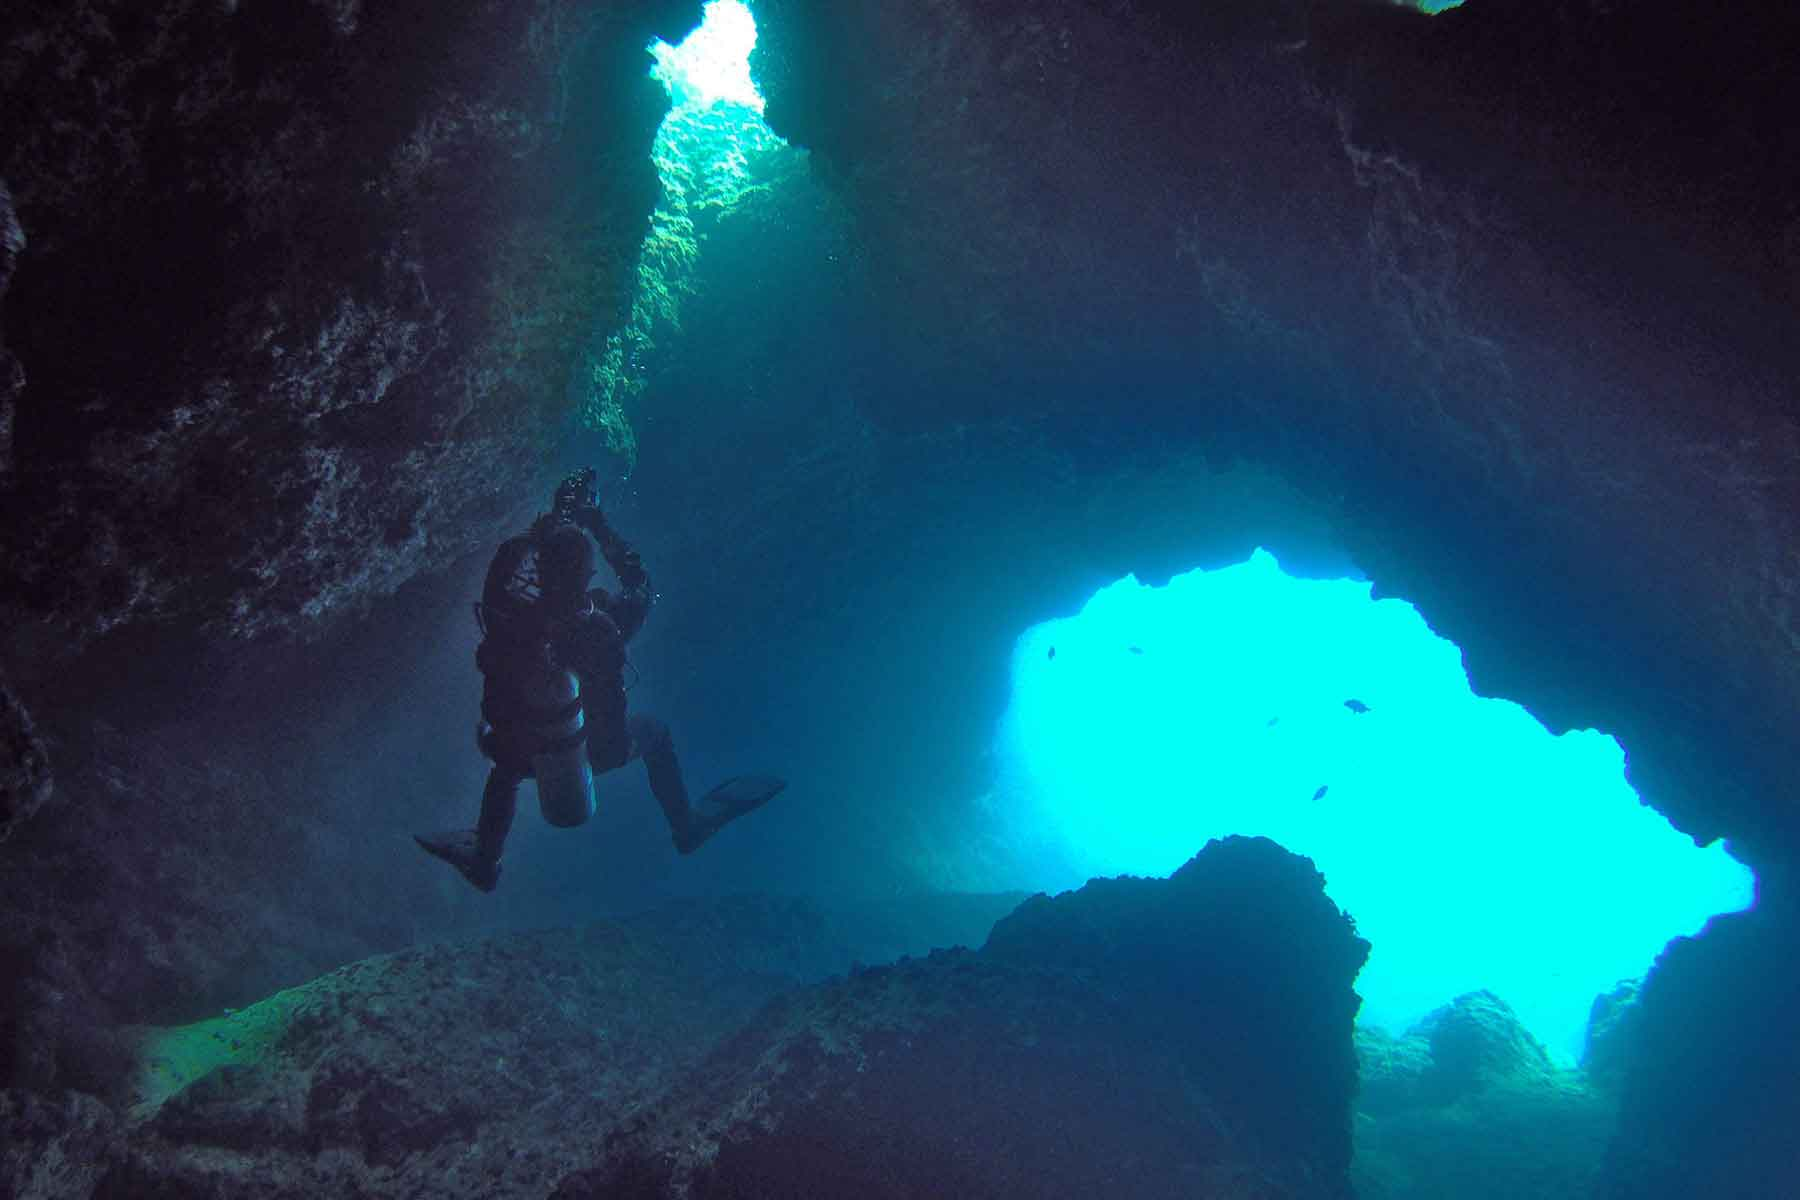 montenegrocave-diving